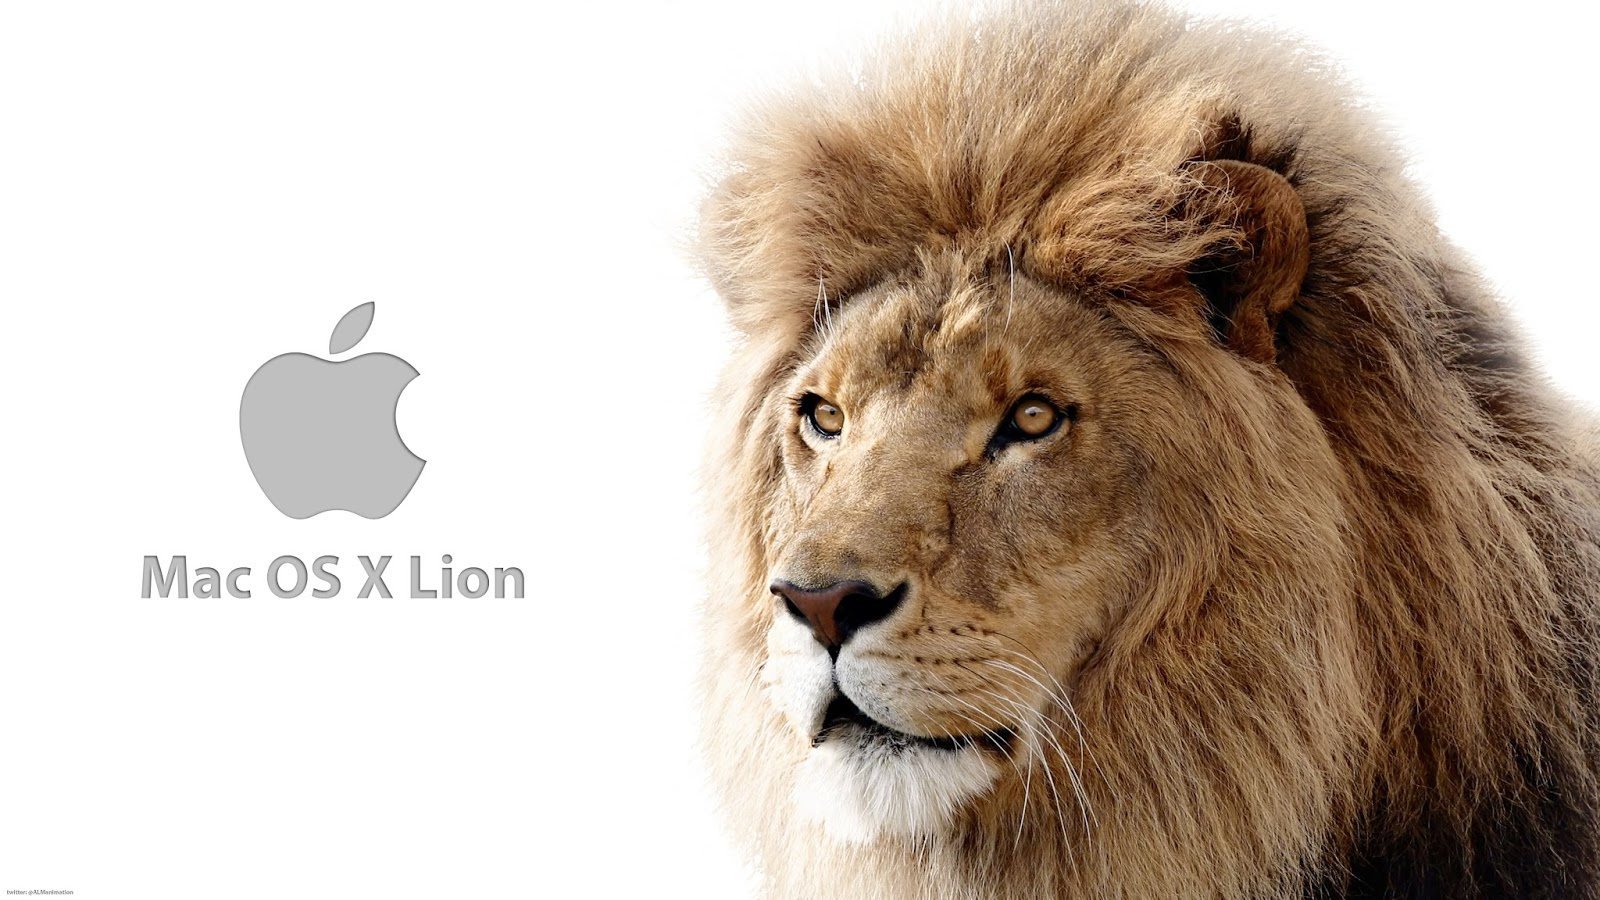 Download os x lion free | os x lion 10 7 DMG free download - Siti Rohmah